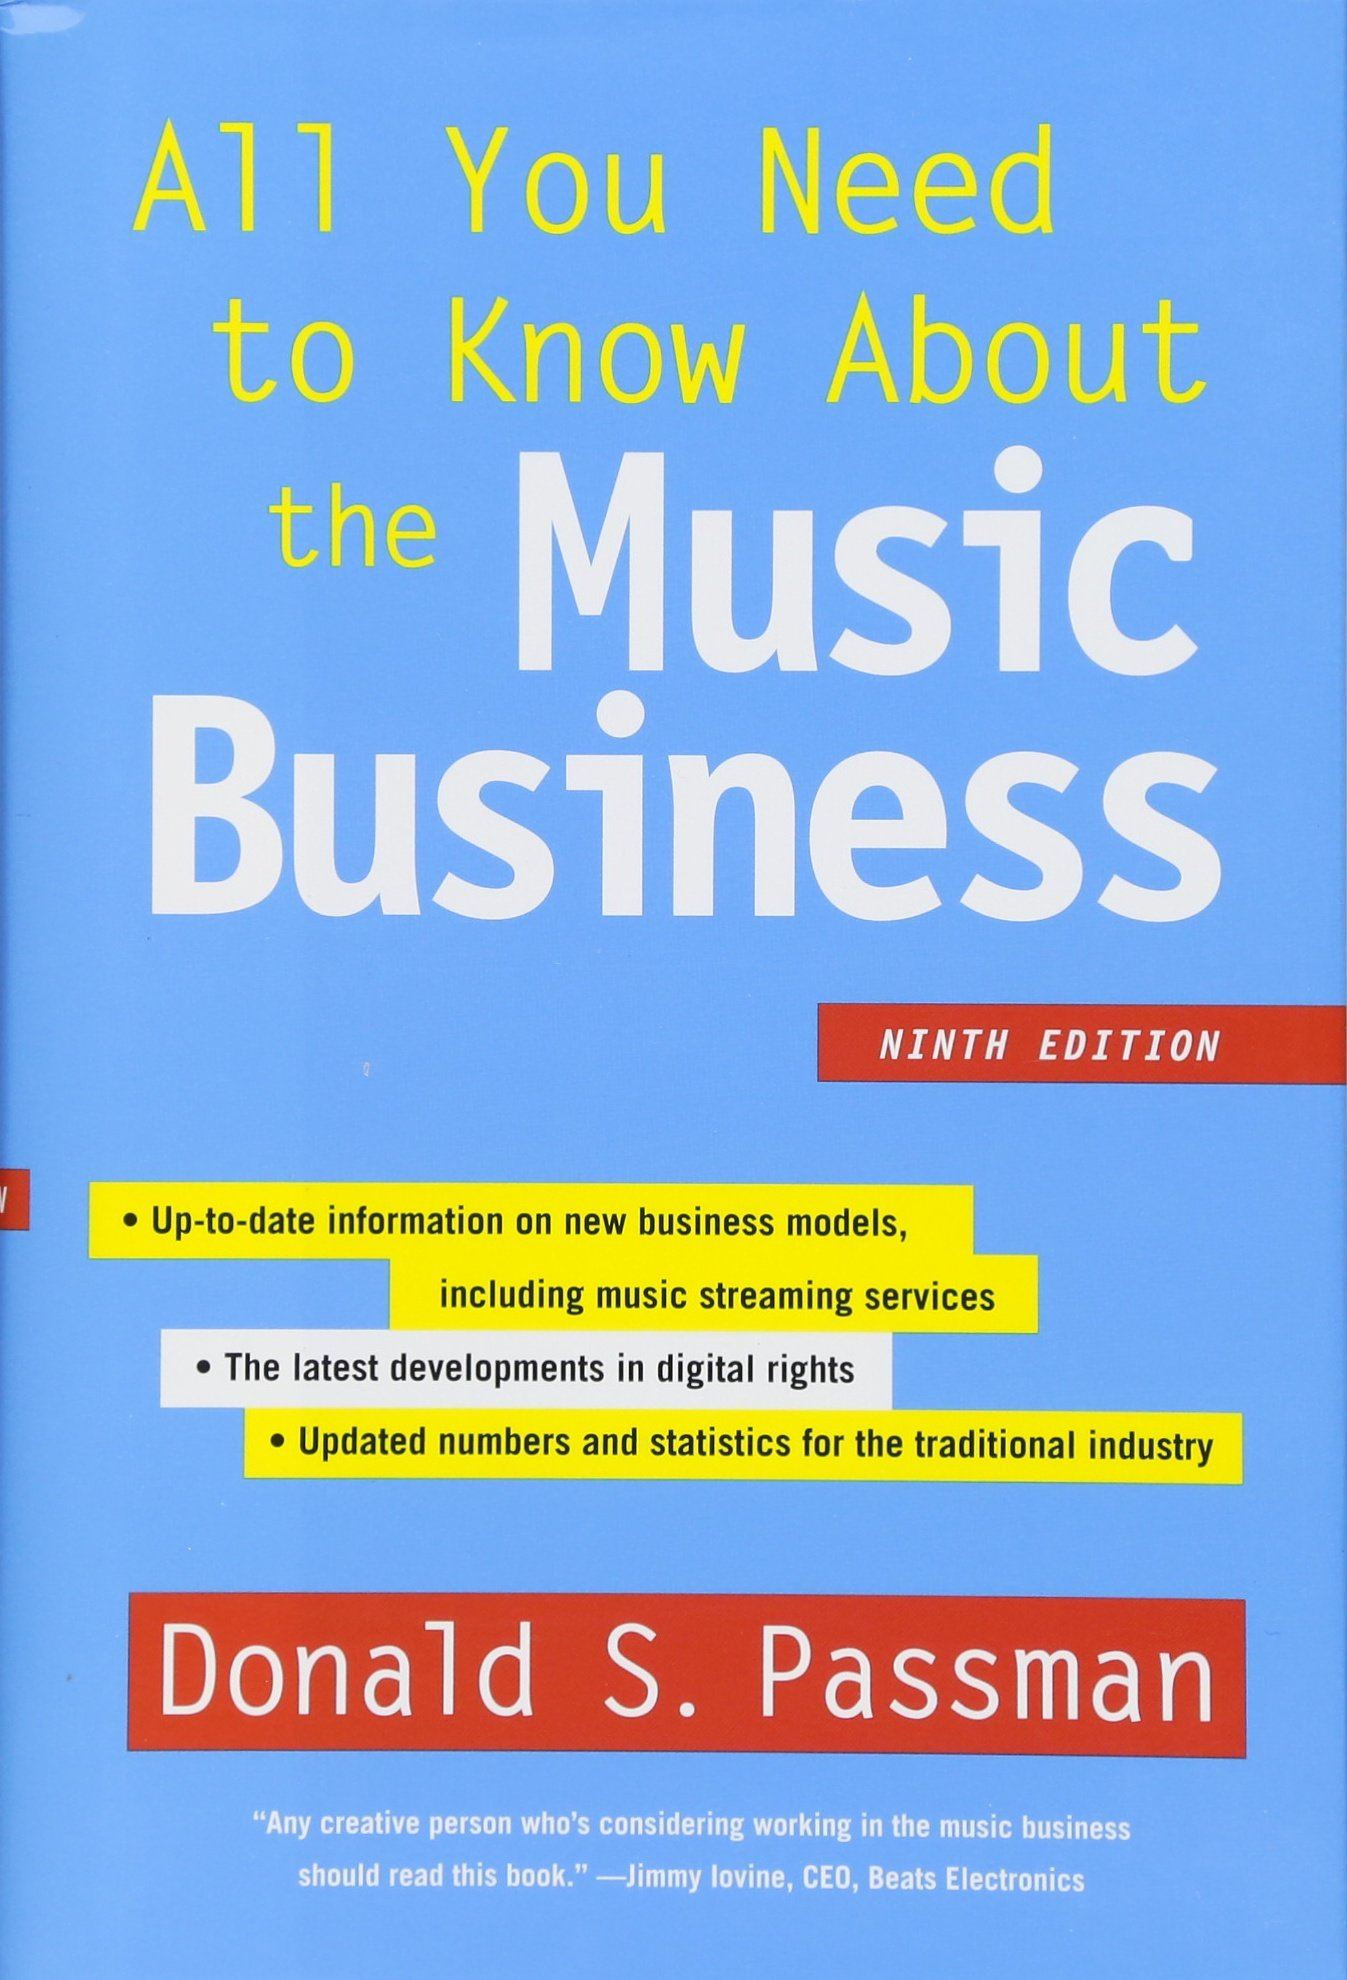 All You Need to Know About the Music Business: Ninth Edition by Simon & Schuster